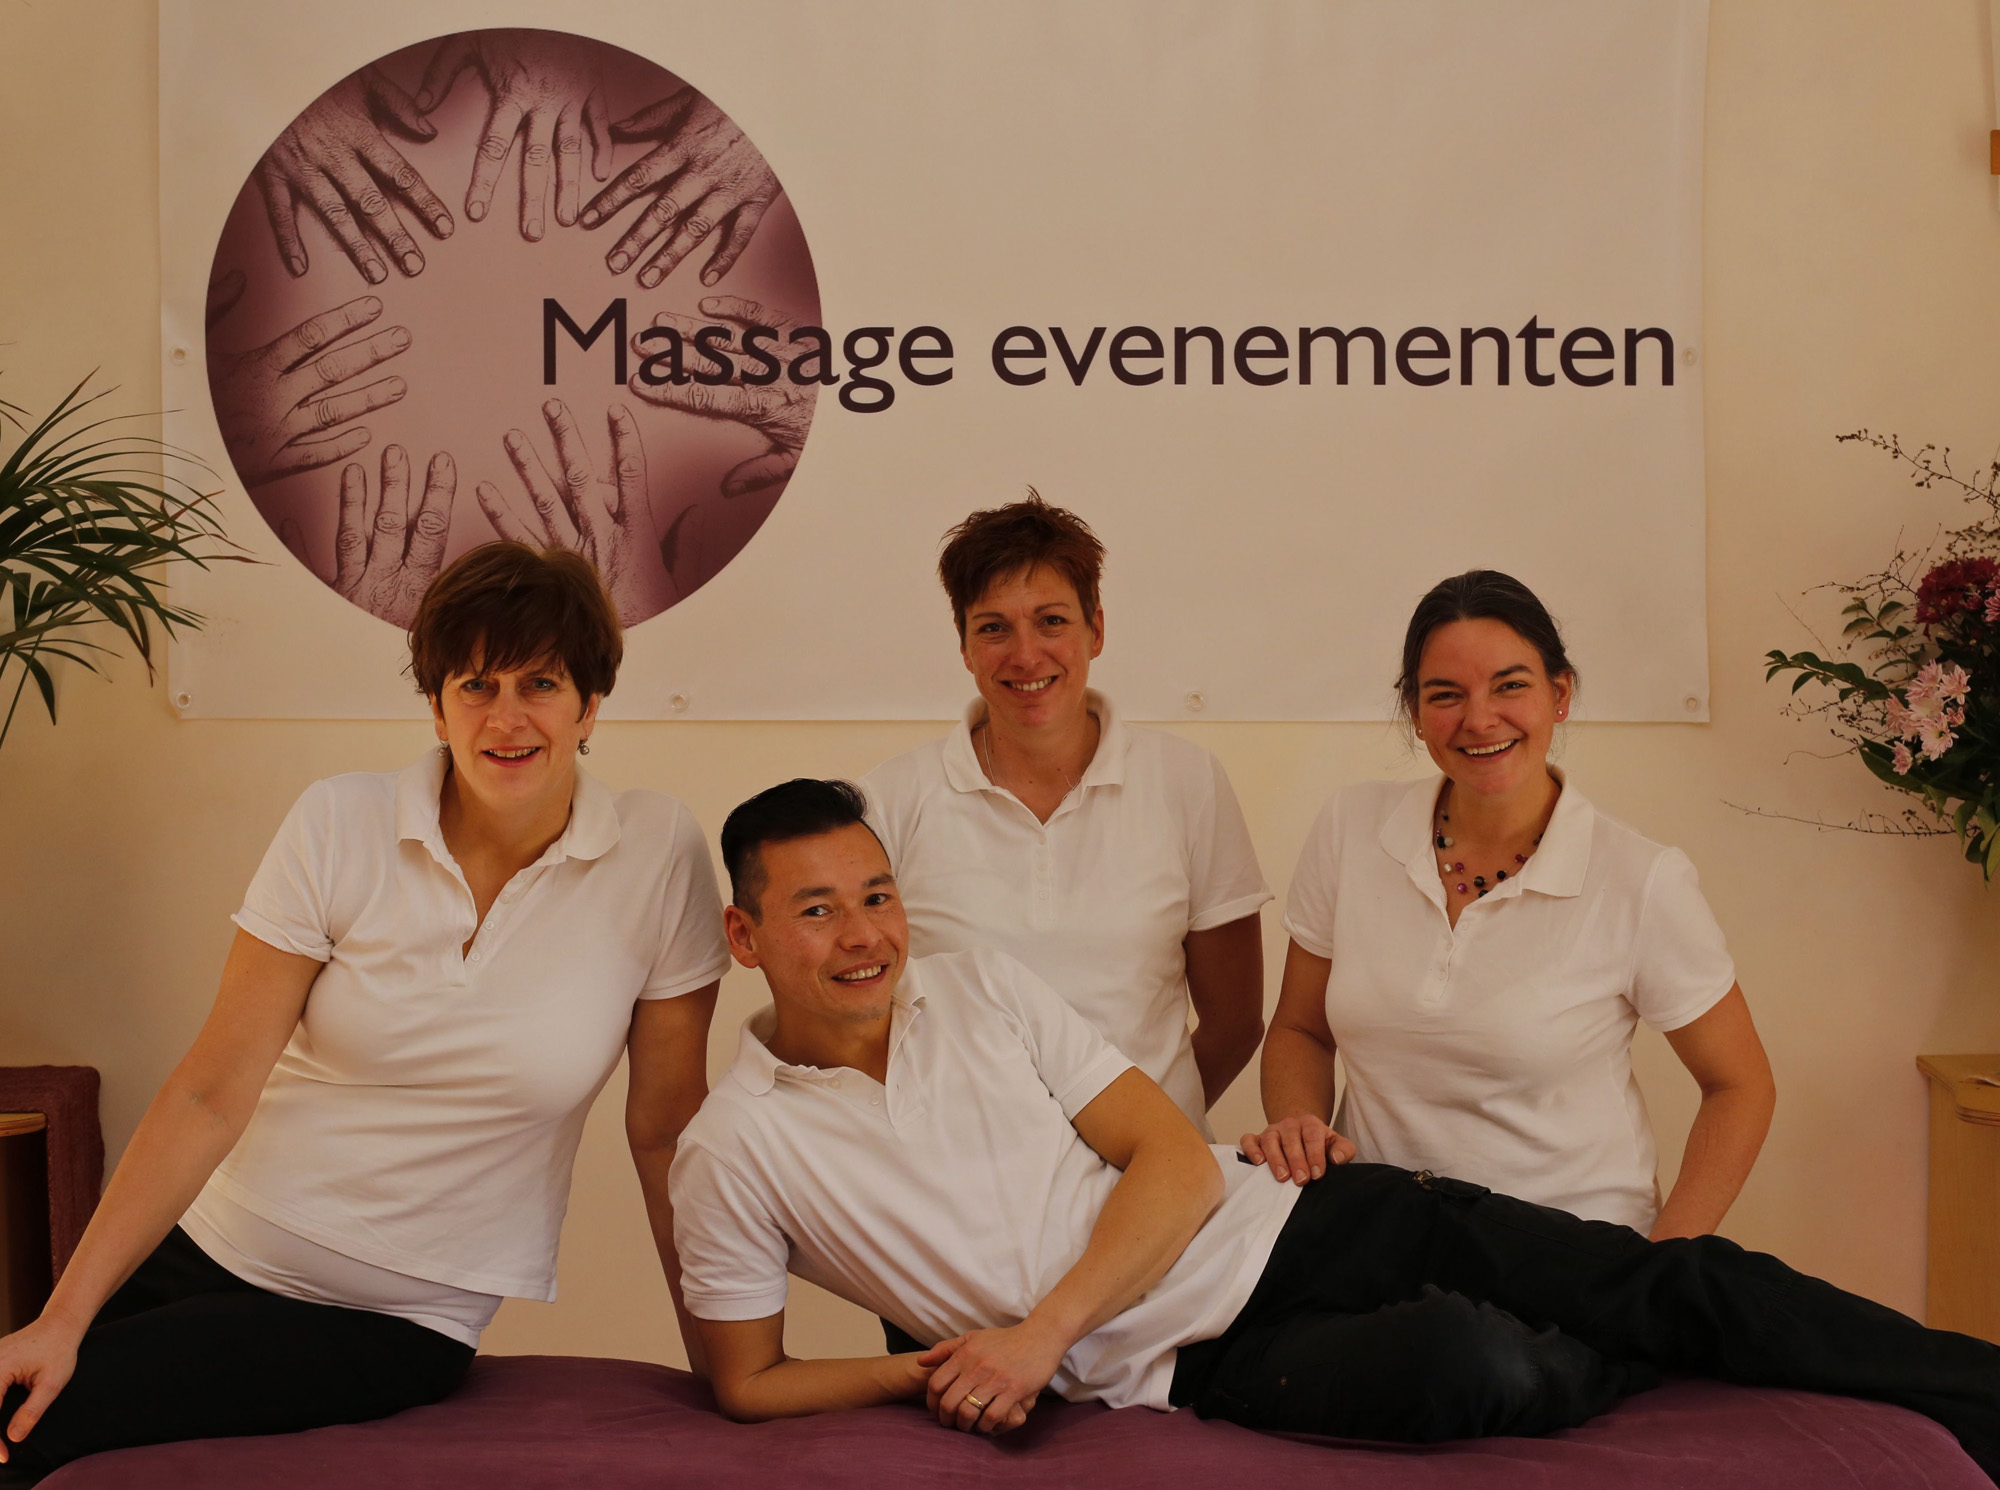 MassageEvenementen team 2016